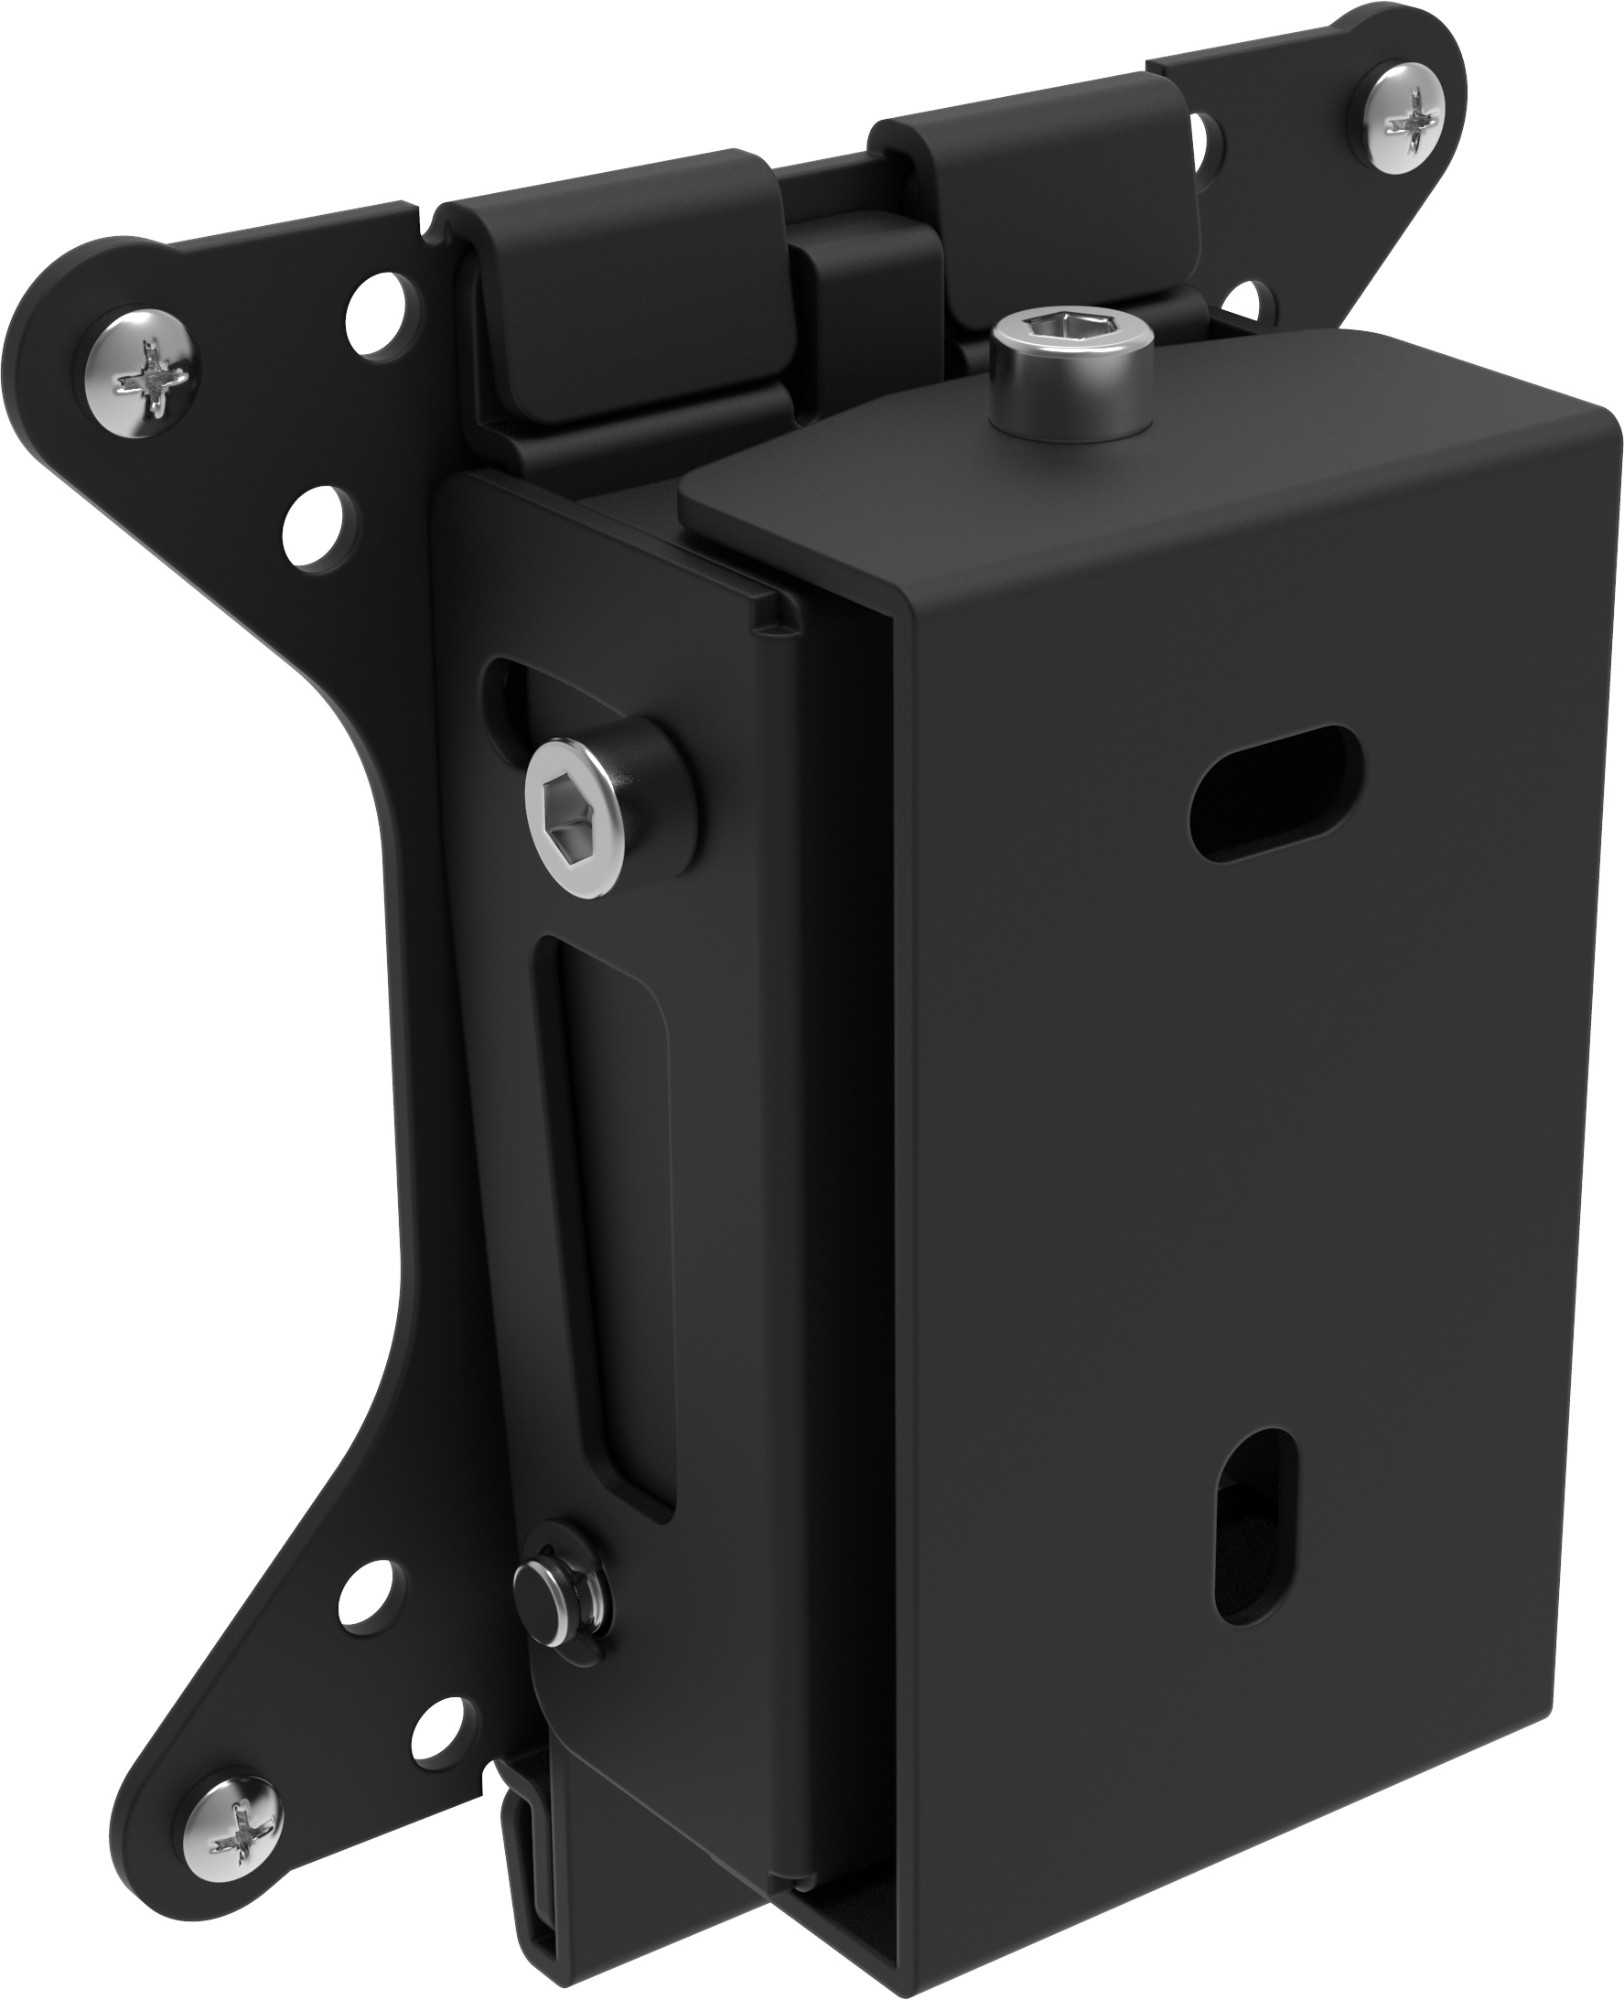 "Vision VFM-W1X1T TV mount 76.2 cm (30"") Black"